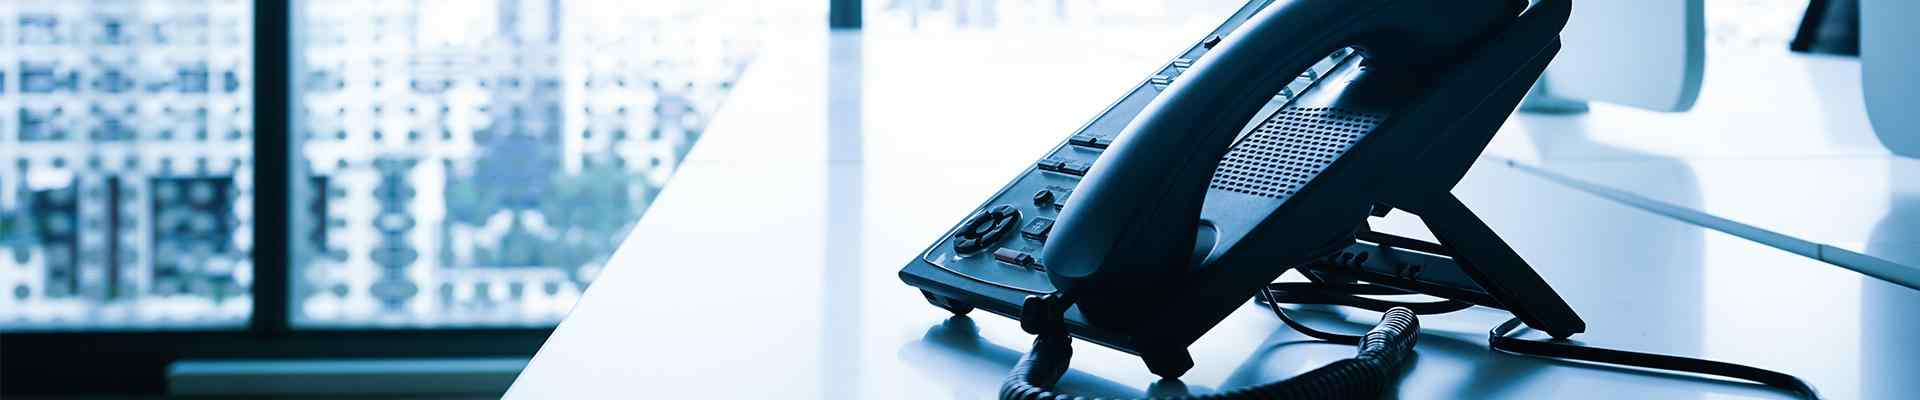 office phone on a desk